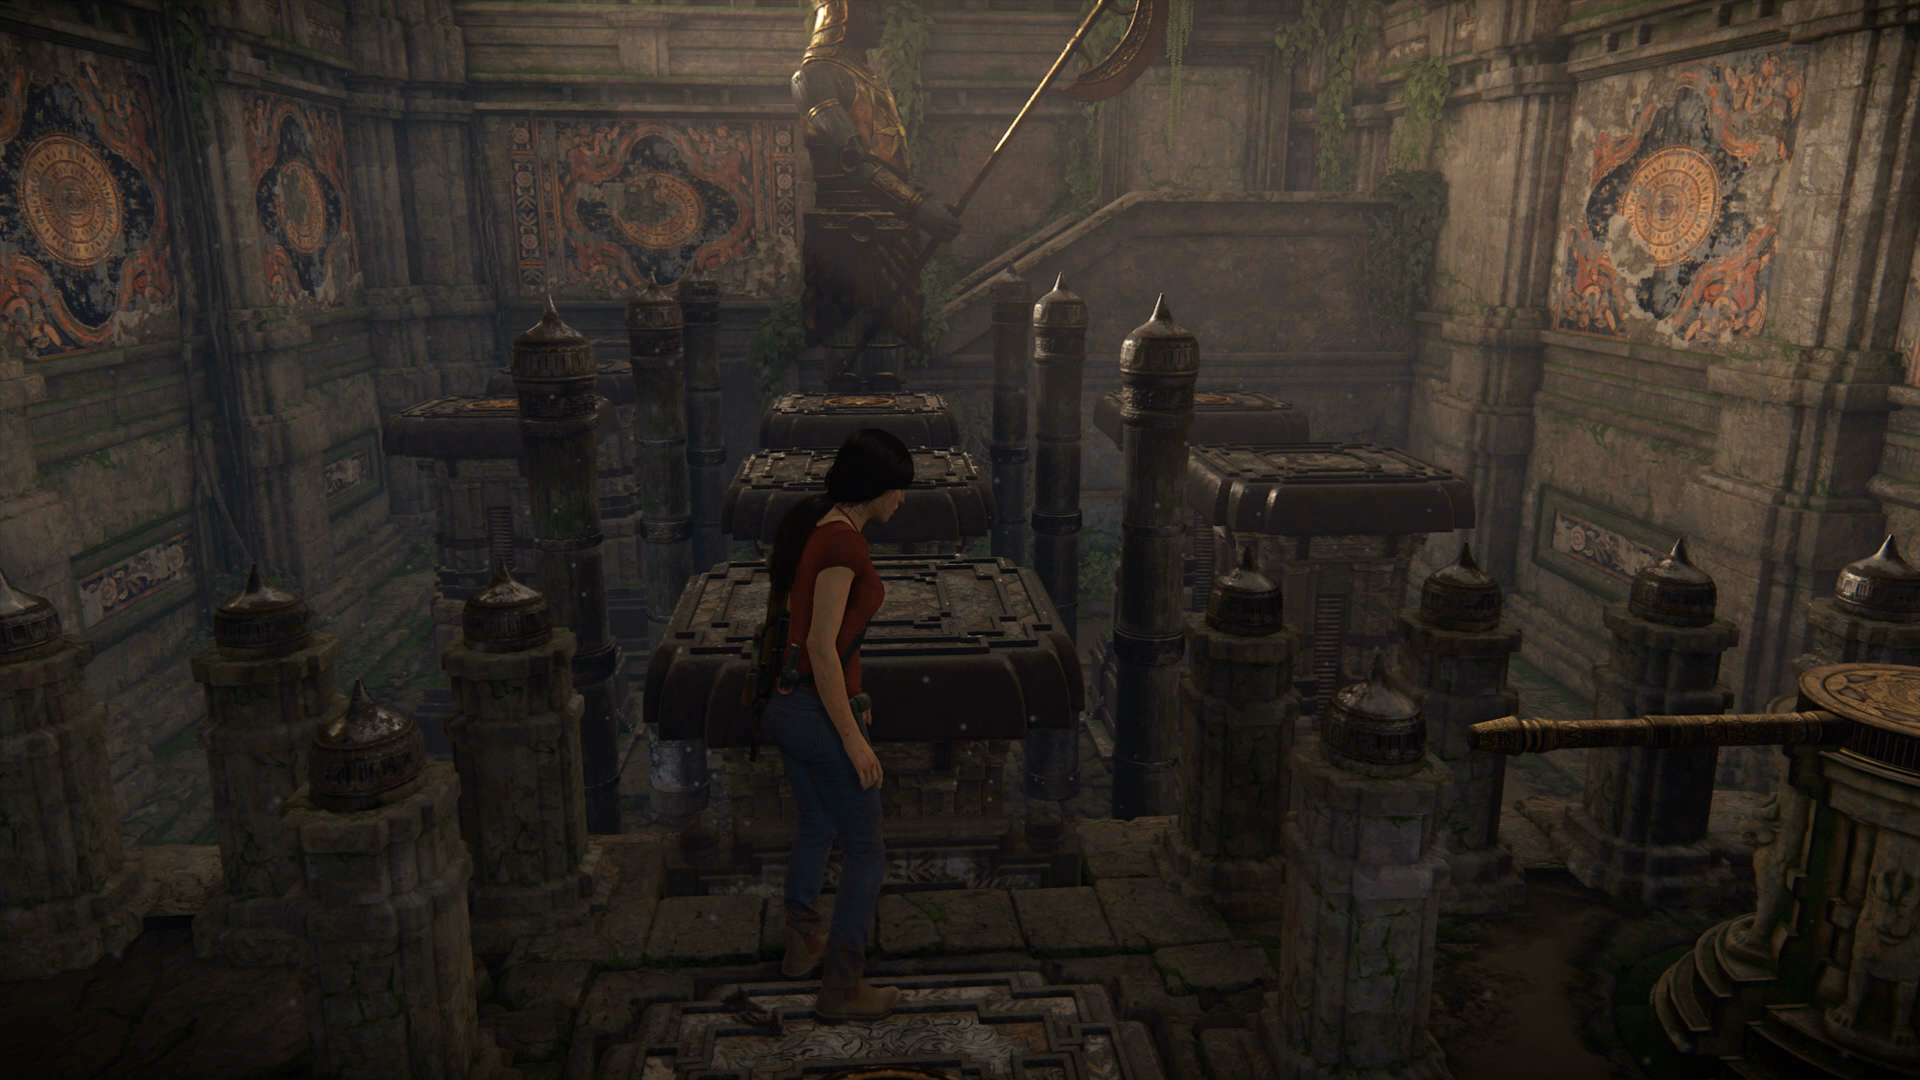 Uncharted The Lost Legacy Axe Statue Puzzles Chapter 4 Western